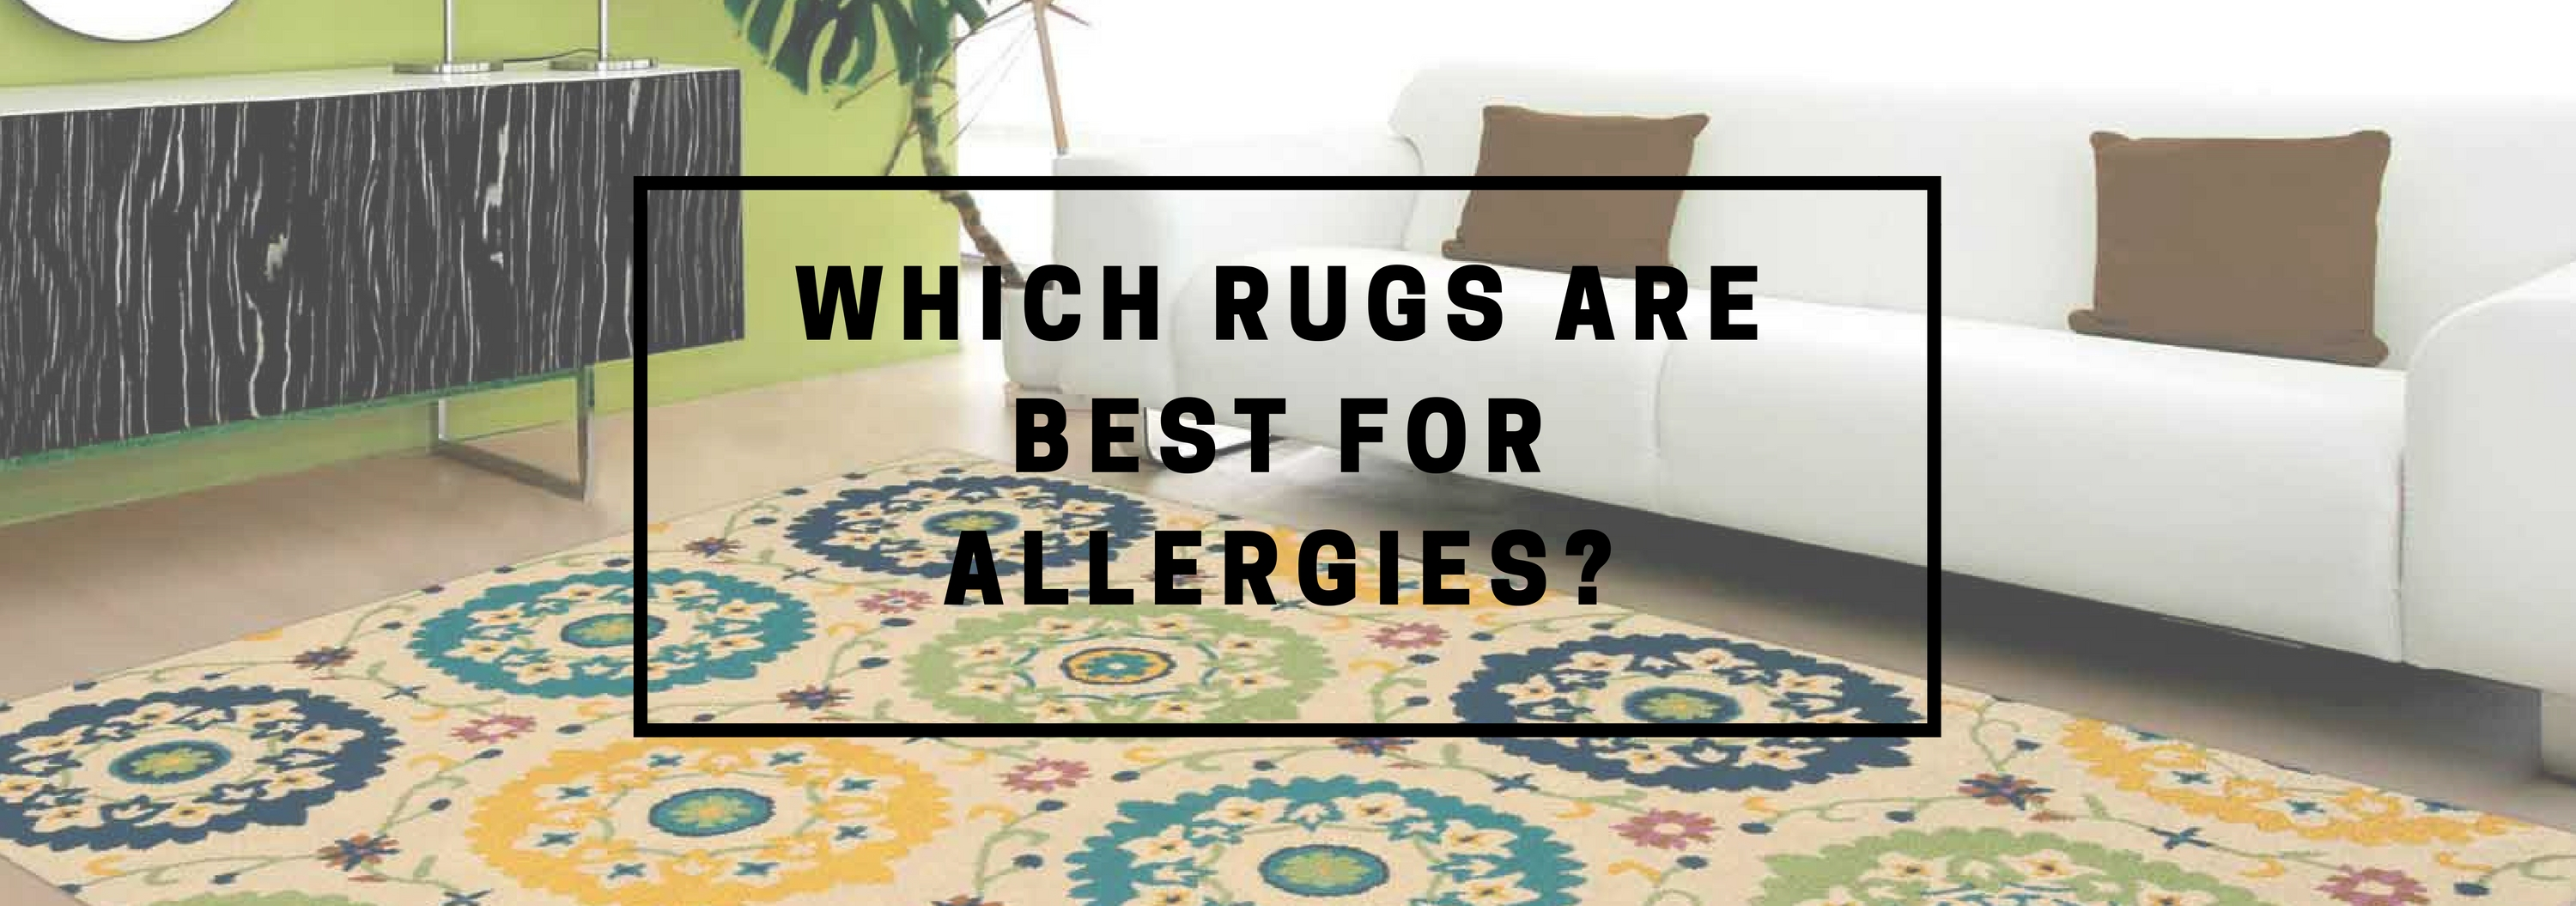 The Causes Of Rug Allergies And Suitable Rugs The Rug Seller